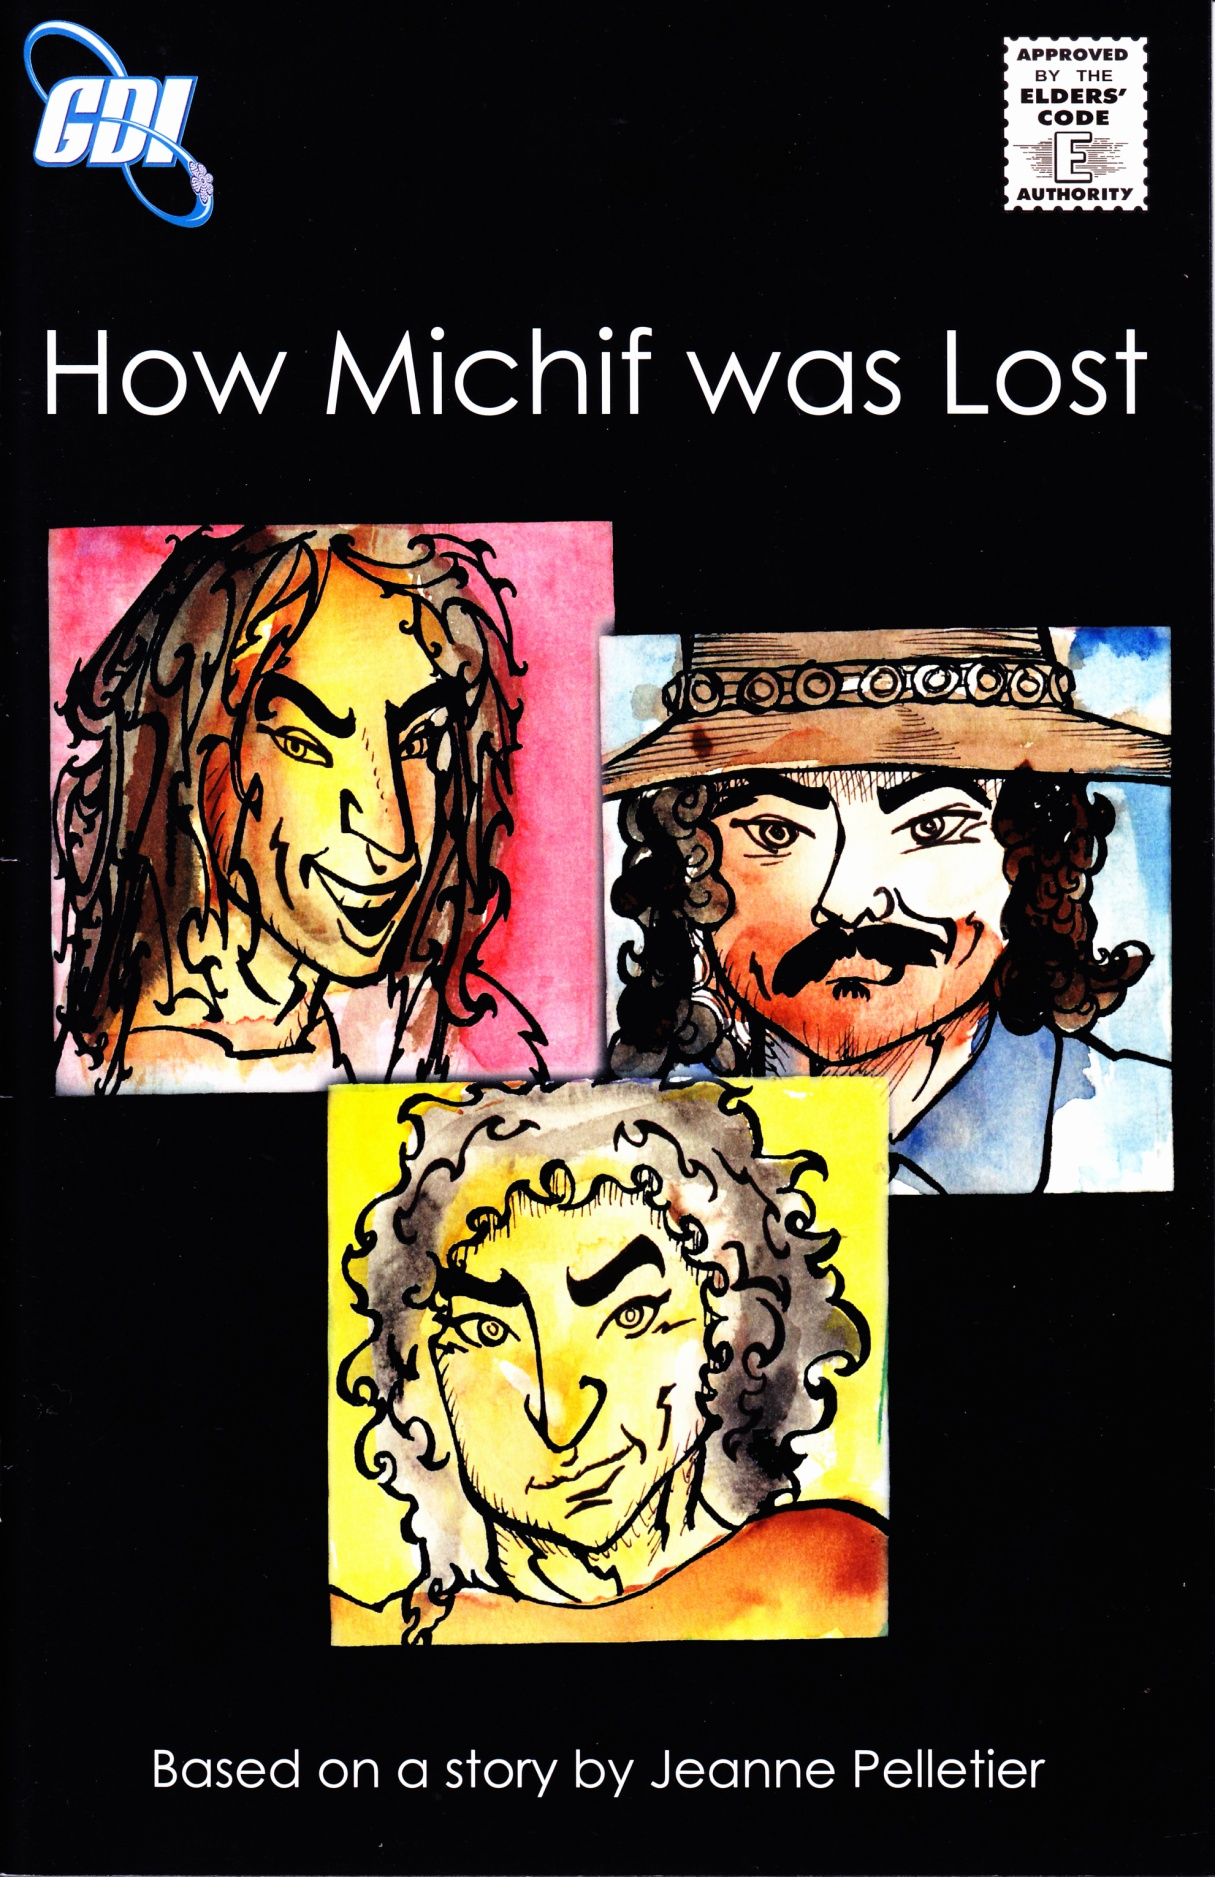 C:\Users\Robert\Documents\CARTOONING ILLUSTRATION ANIMATION\IMAGE COVER COMIC BOOK\HOW MICHIF WAS LOST, 2015, FC.jpg